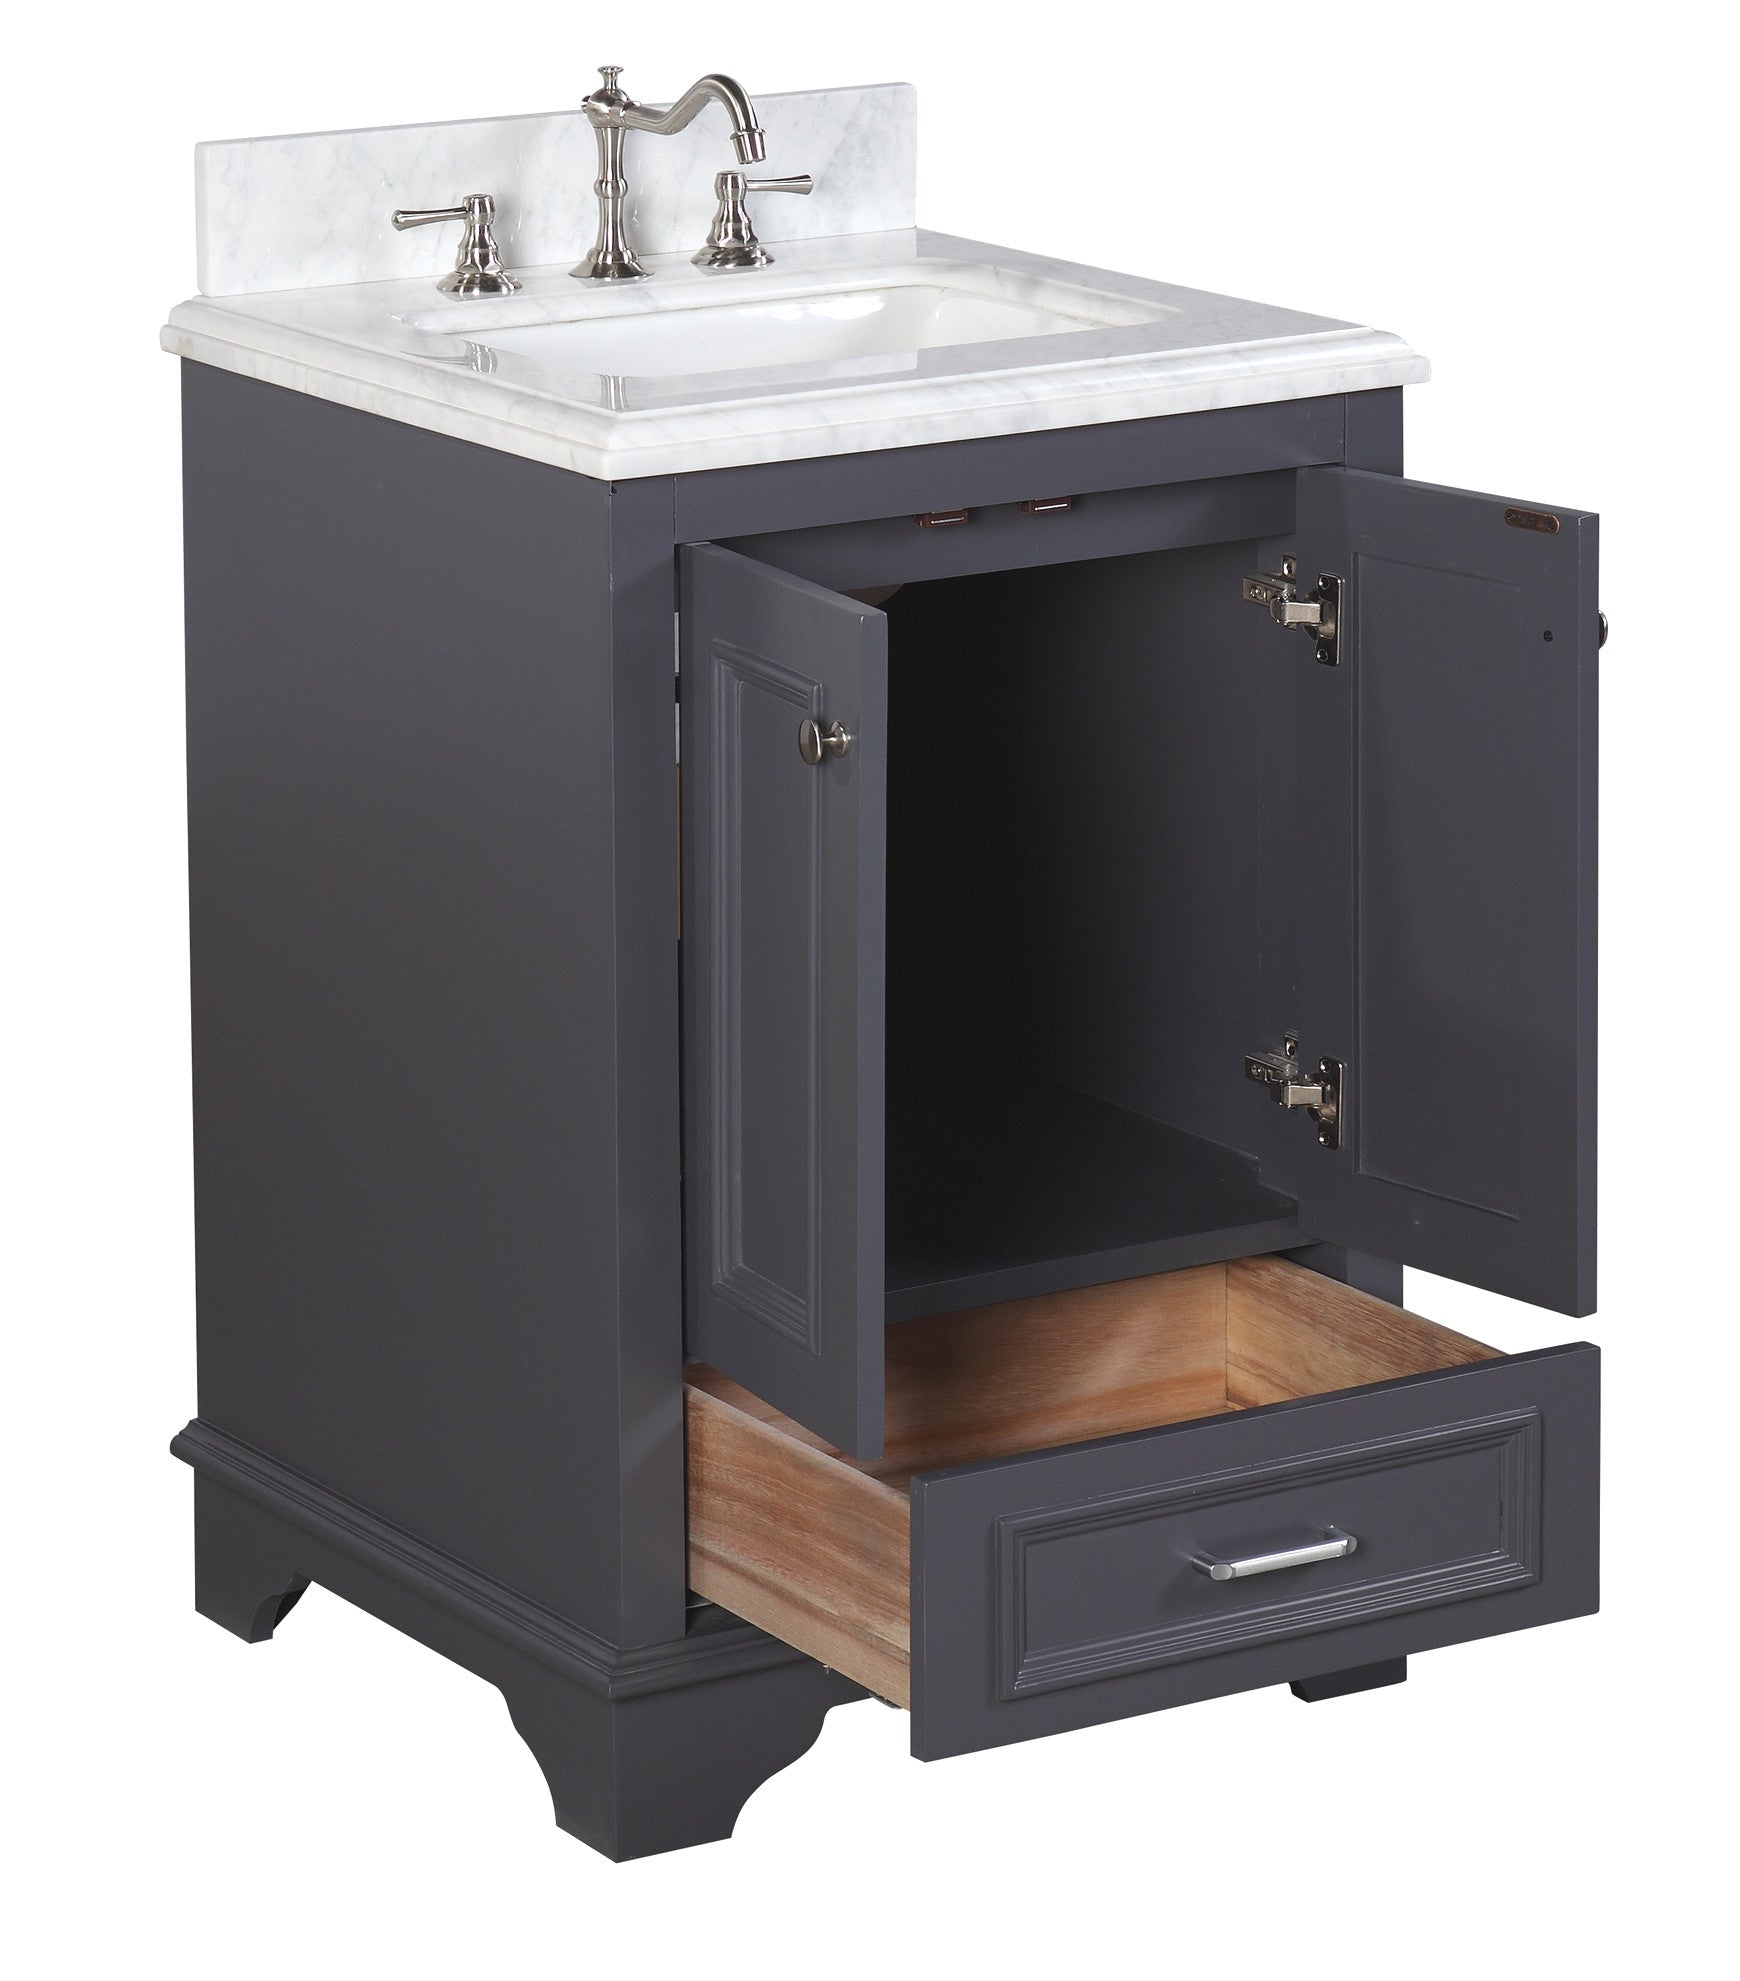 Nantucket 24-inch Vanity (Carrara/Charcoal Gray)